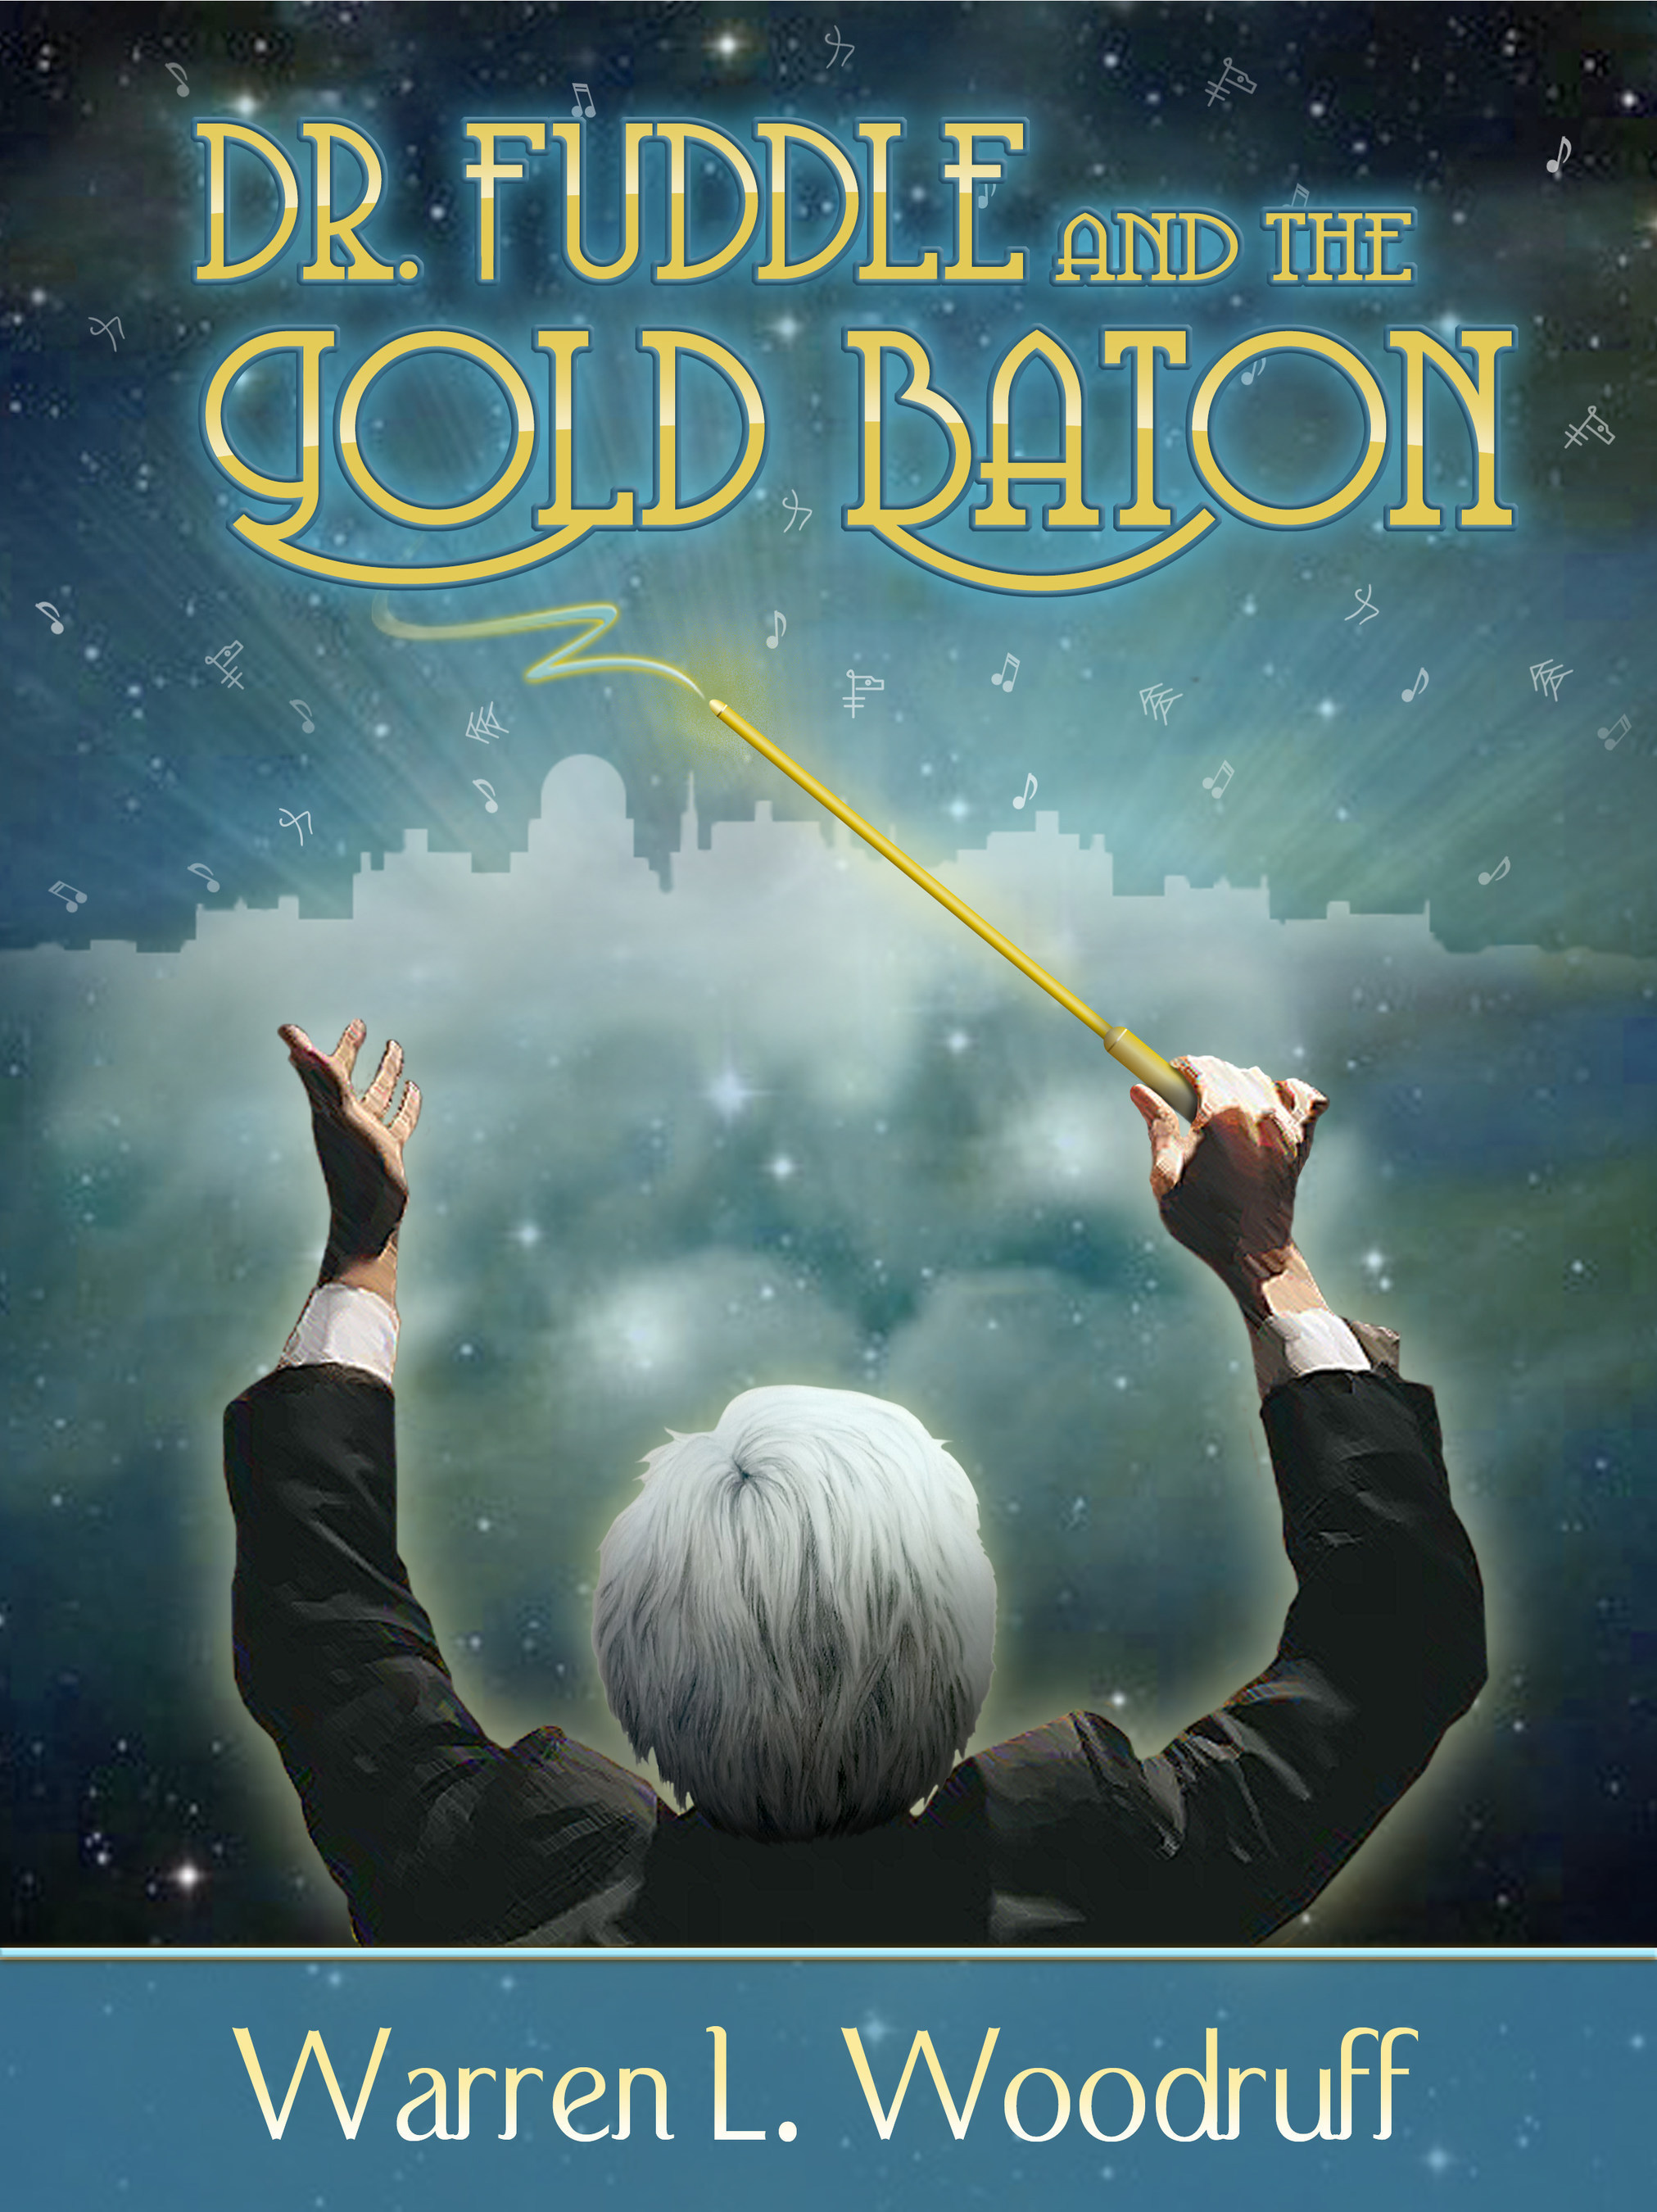 Dr. Fuddle and the Gold Baton by Dr. Warren L. Woodruff